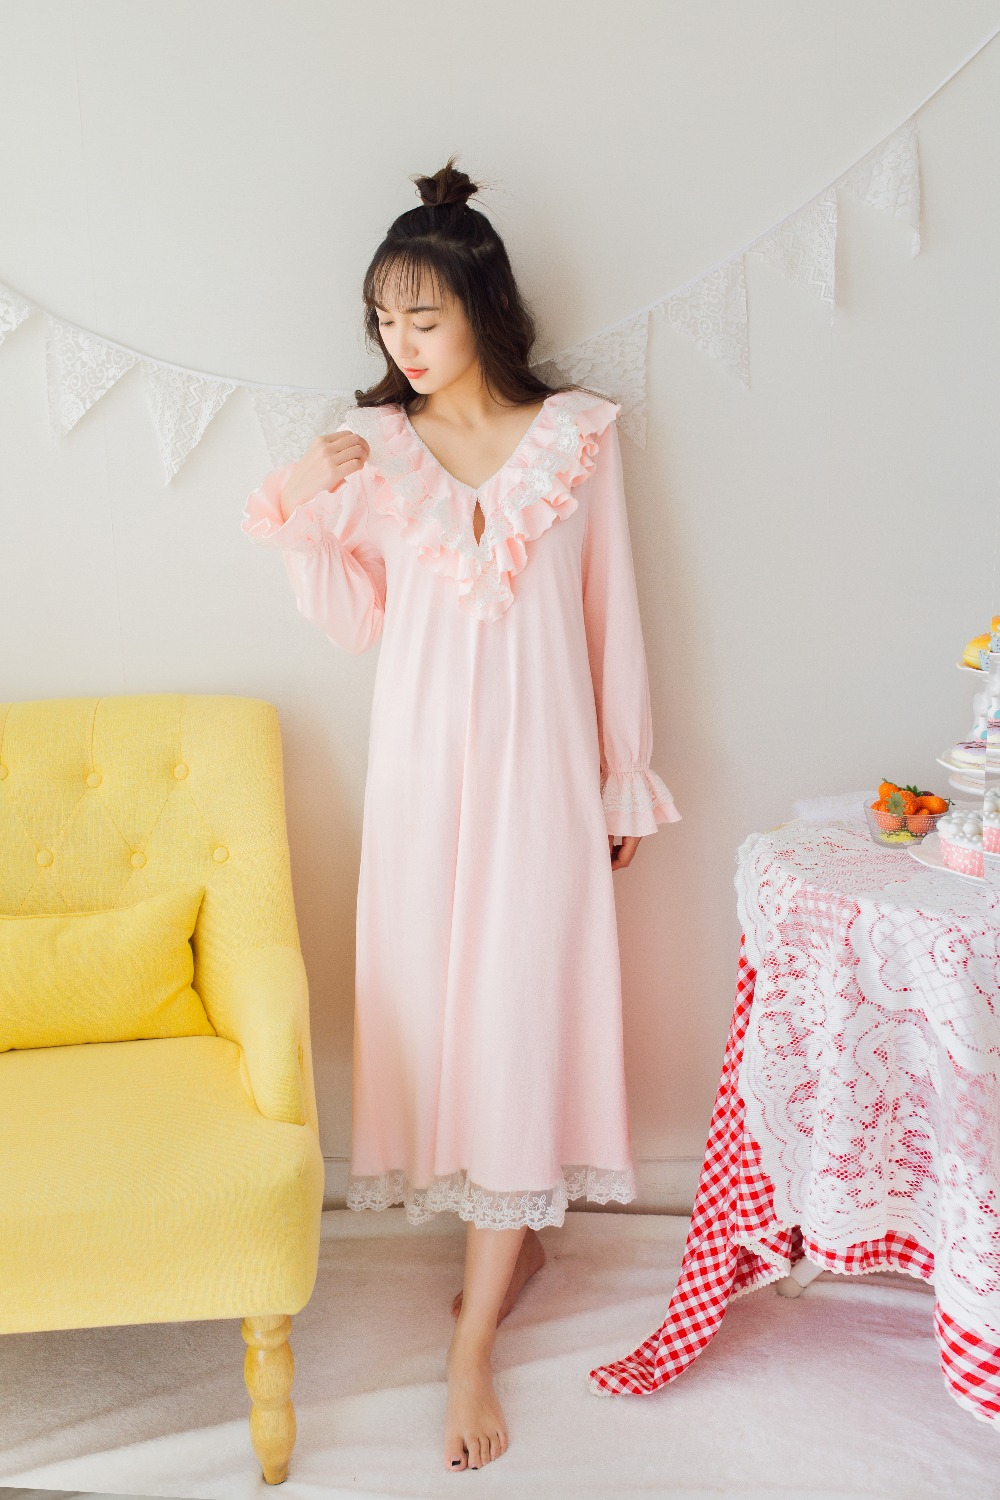 Free Shipping 2017 New Spring Princess Women s Long Nightgown Cotton and Lace Nihgtshirt Pink and